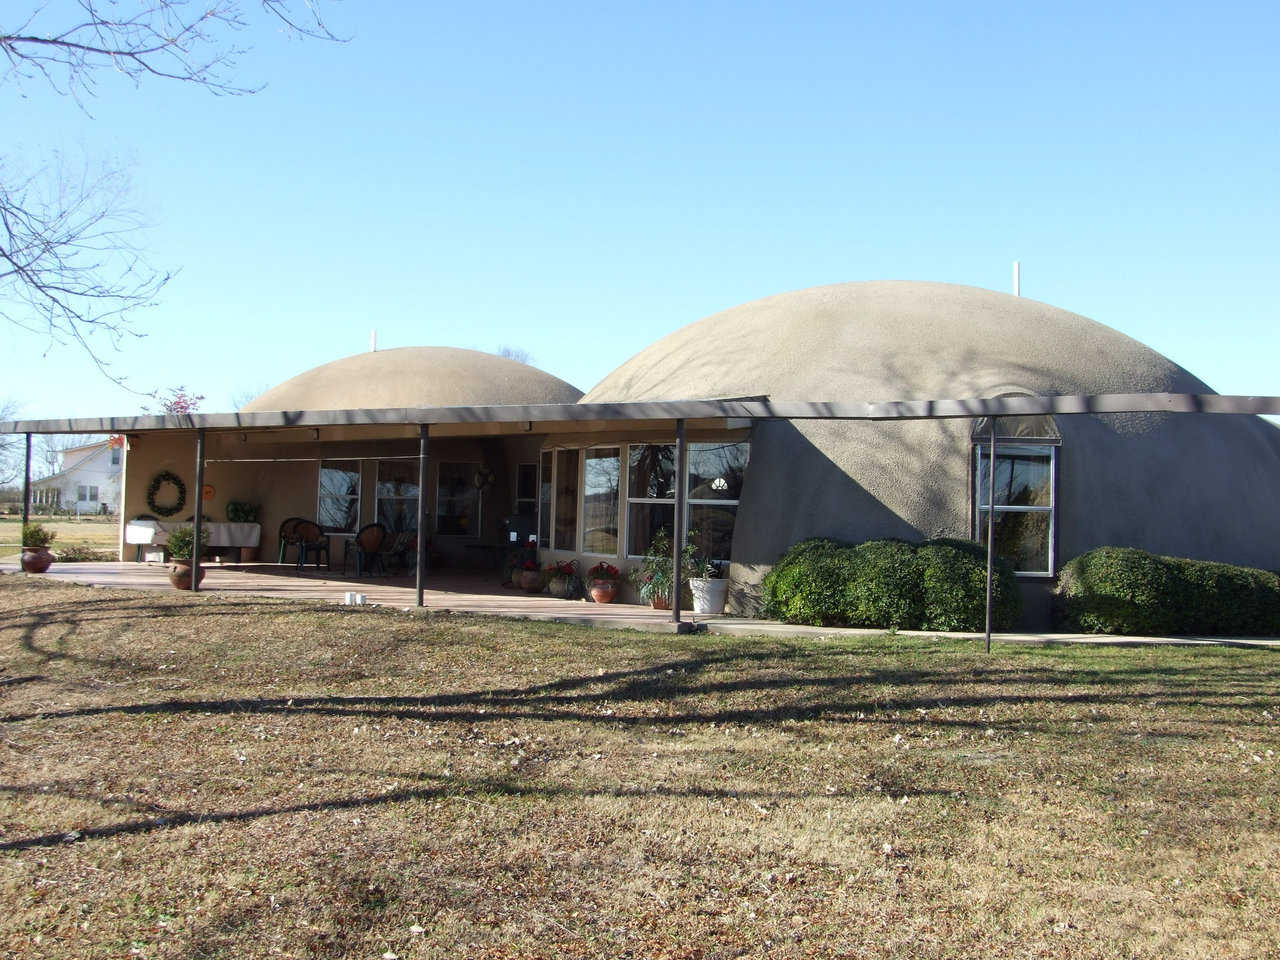 Charca Casa in Italy, Texas — Judy and David South's home, Charca Casa, was designed and constructed as a duplex of two connected domes, each with a diameter of 40 feet. Since its construction in 1994, Charca Casa has beautifully survived several horrific, typically Texas wind storms and twisters.